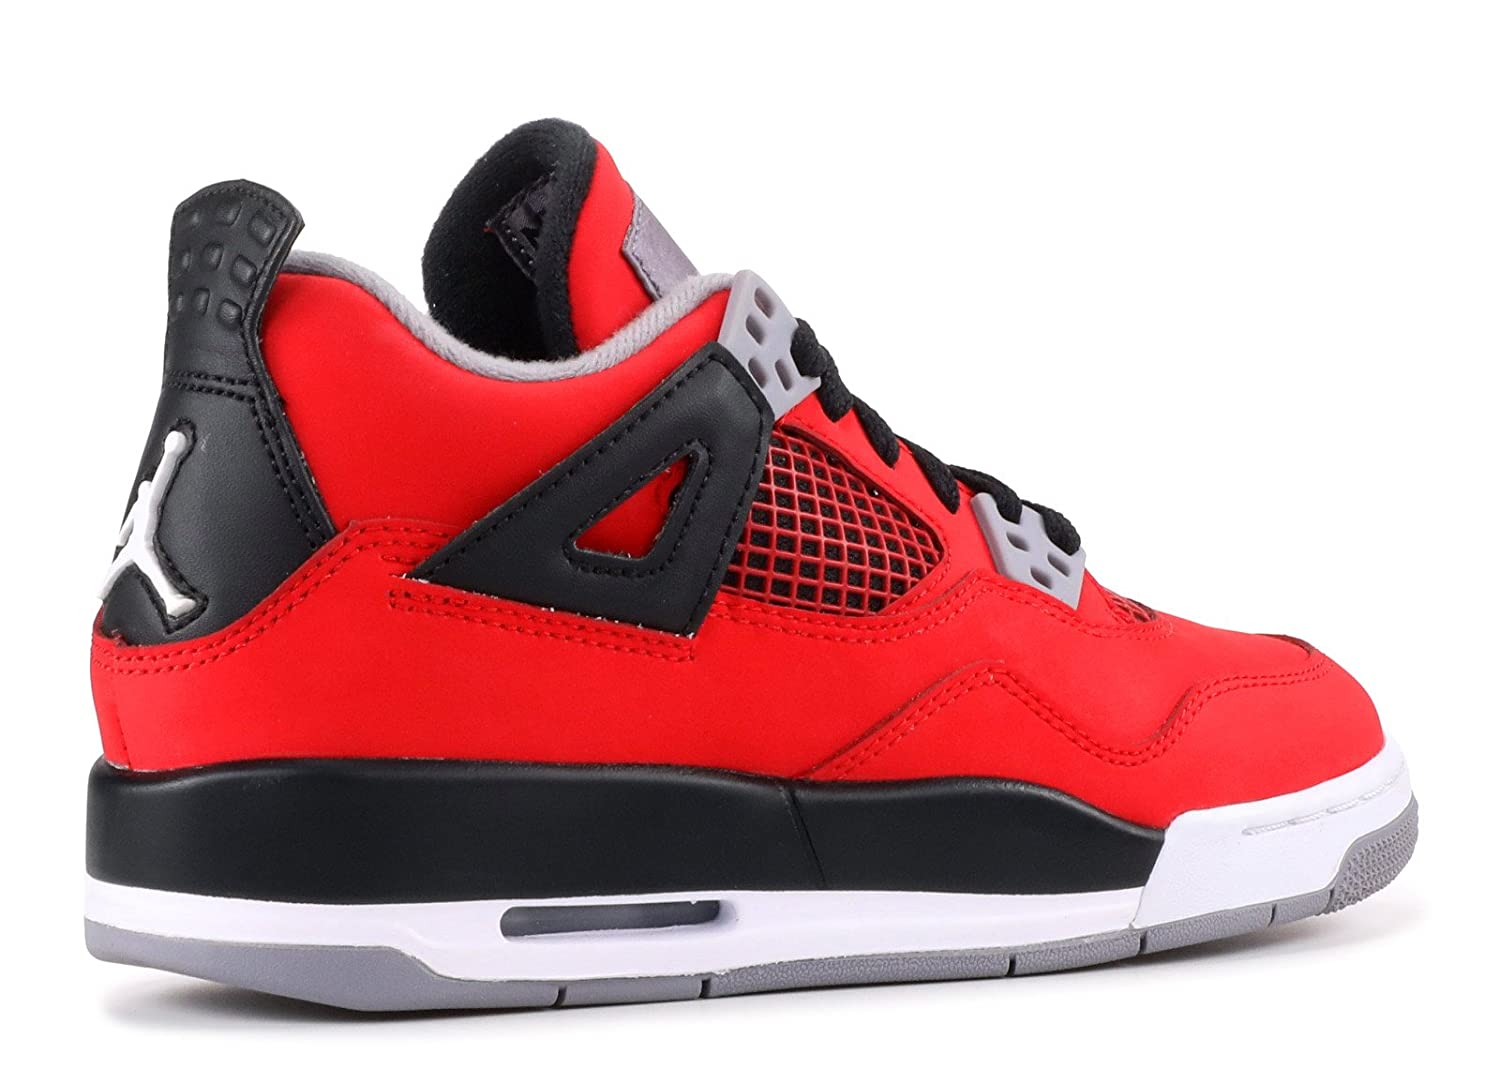 Air Jordan 4 Retro size 40eur 6Uk GS: Amazon.co.uk: Shoes & Bags